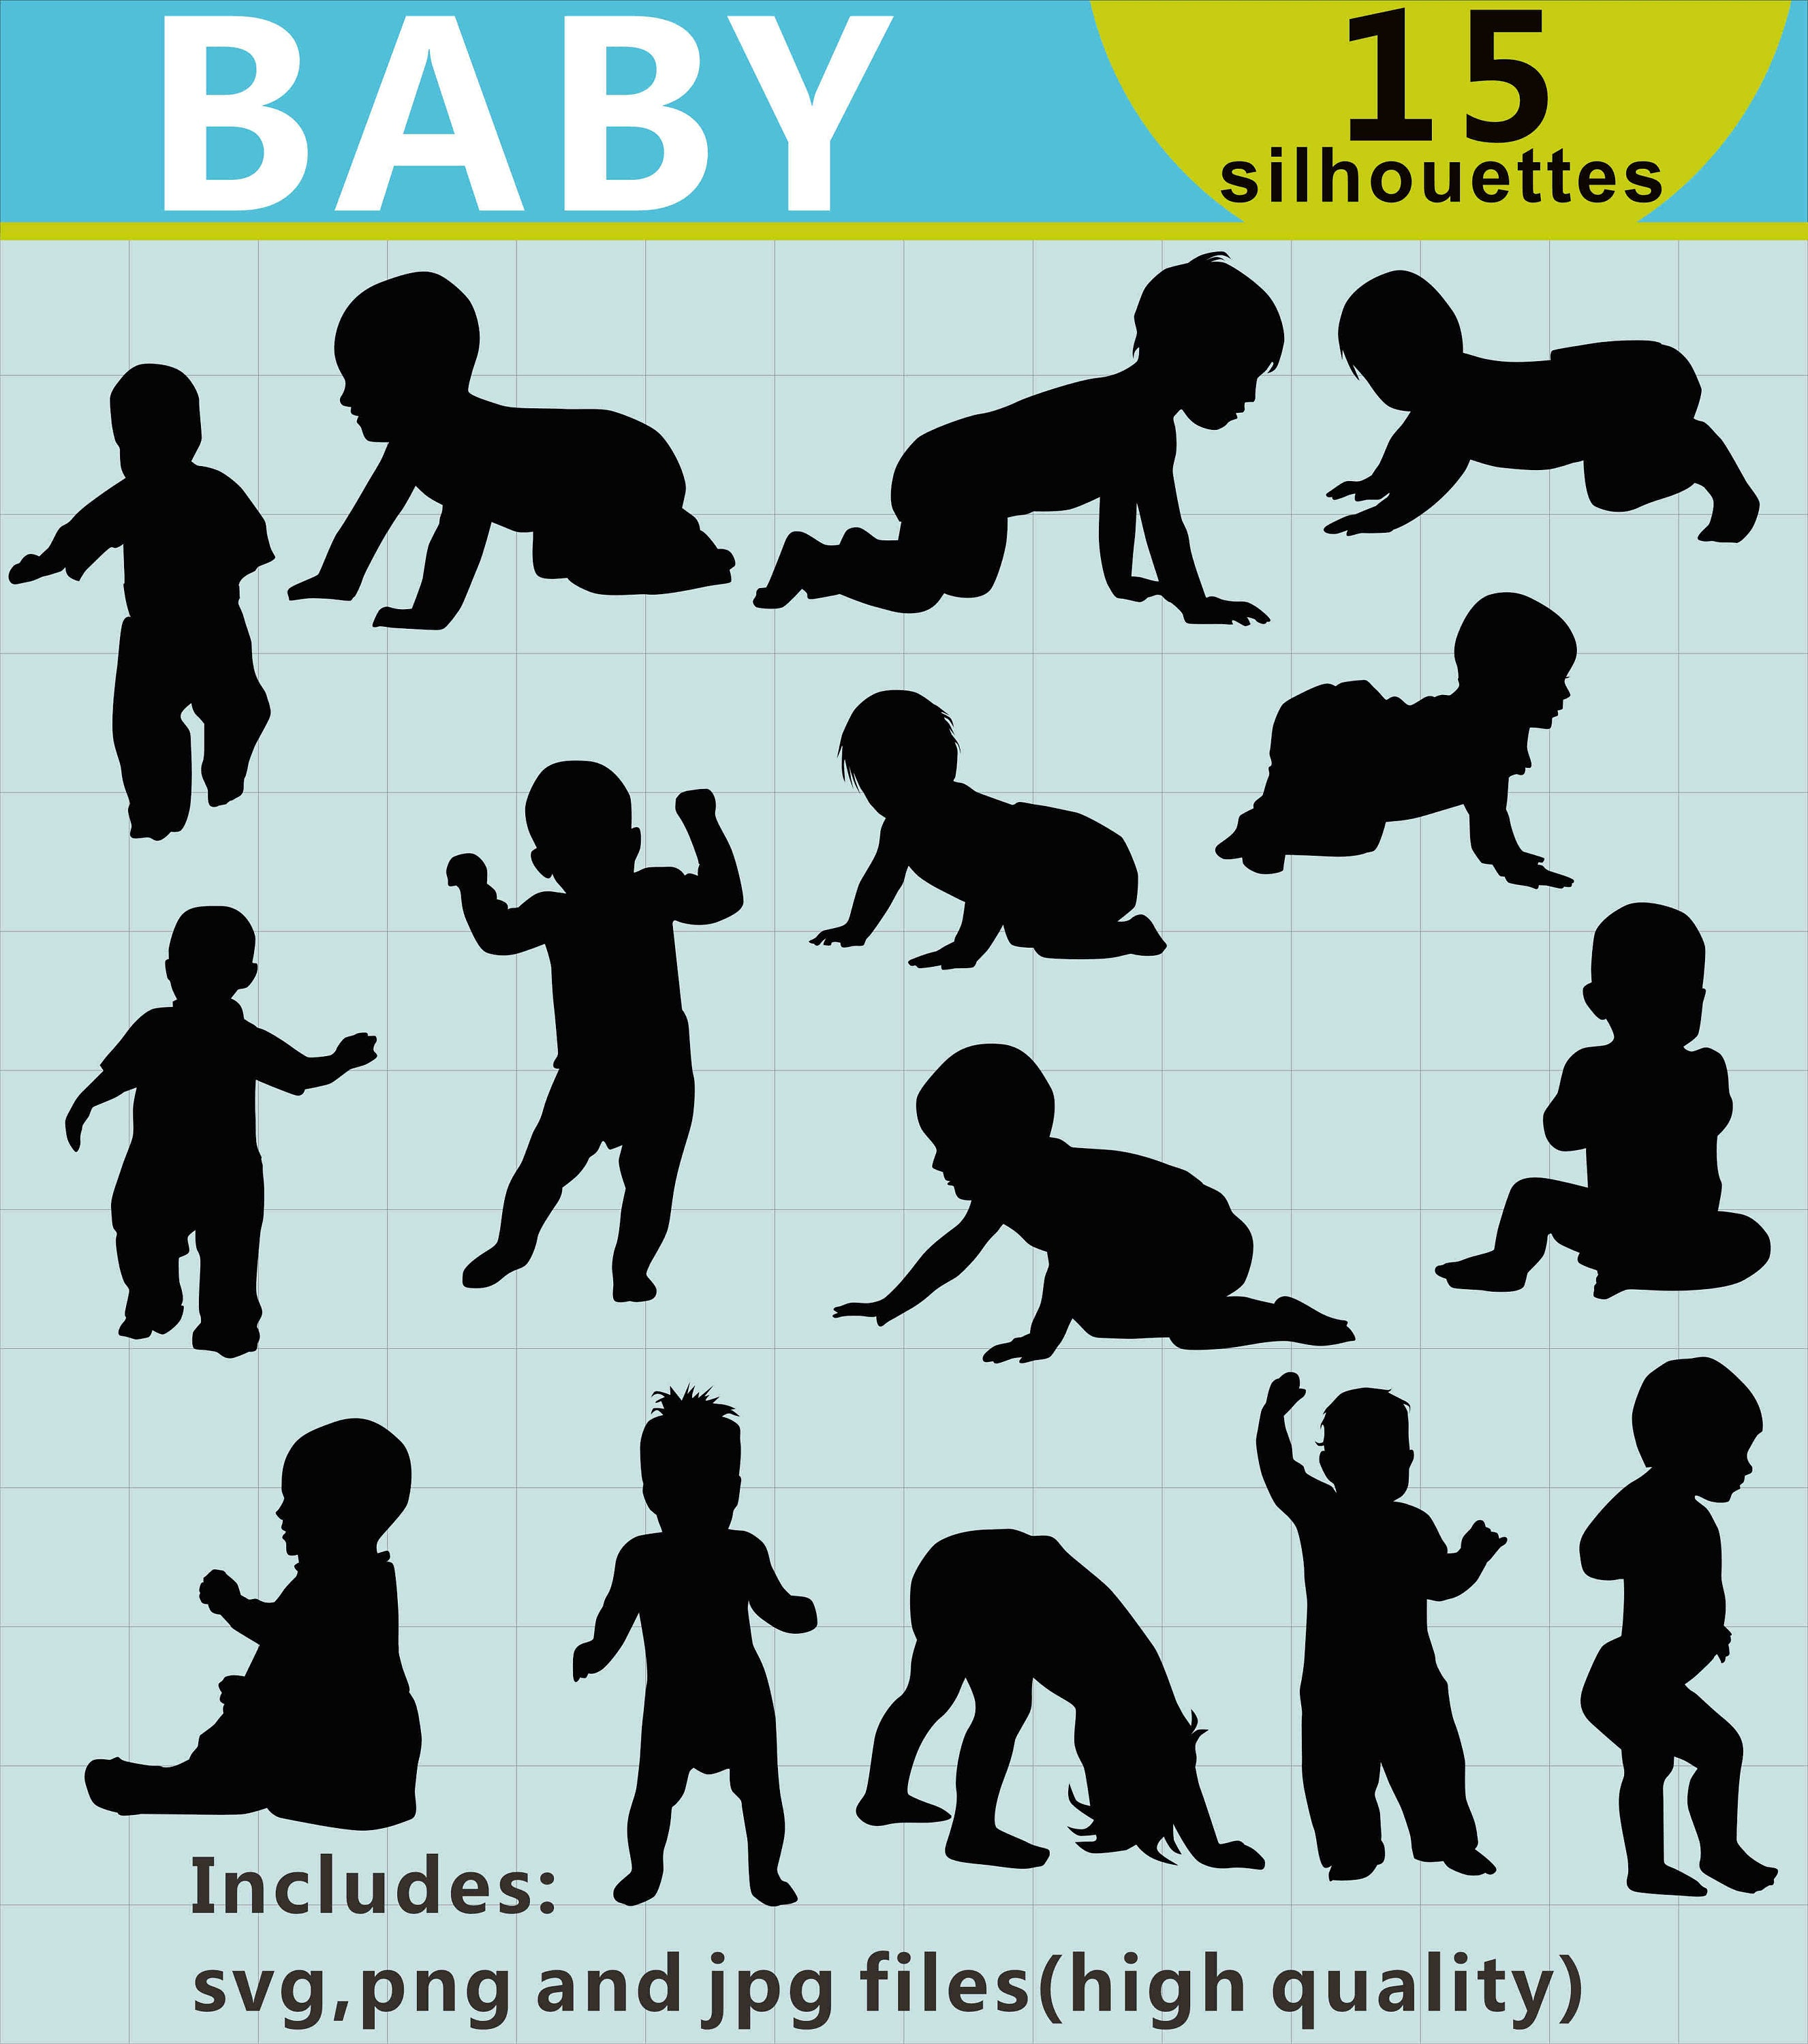 Baby silhouette Clipart, Baby Clipart, Kids Clipart, Child Silhouettes,  Digital Clipart Images, Baby SVG Designs, SVG Files.